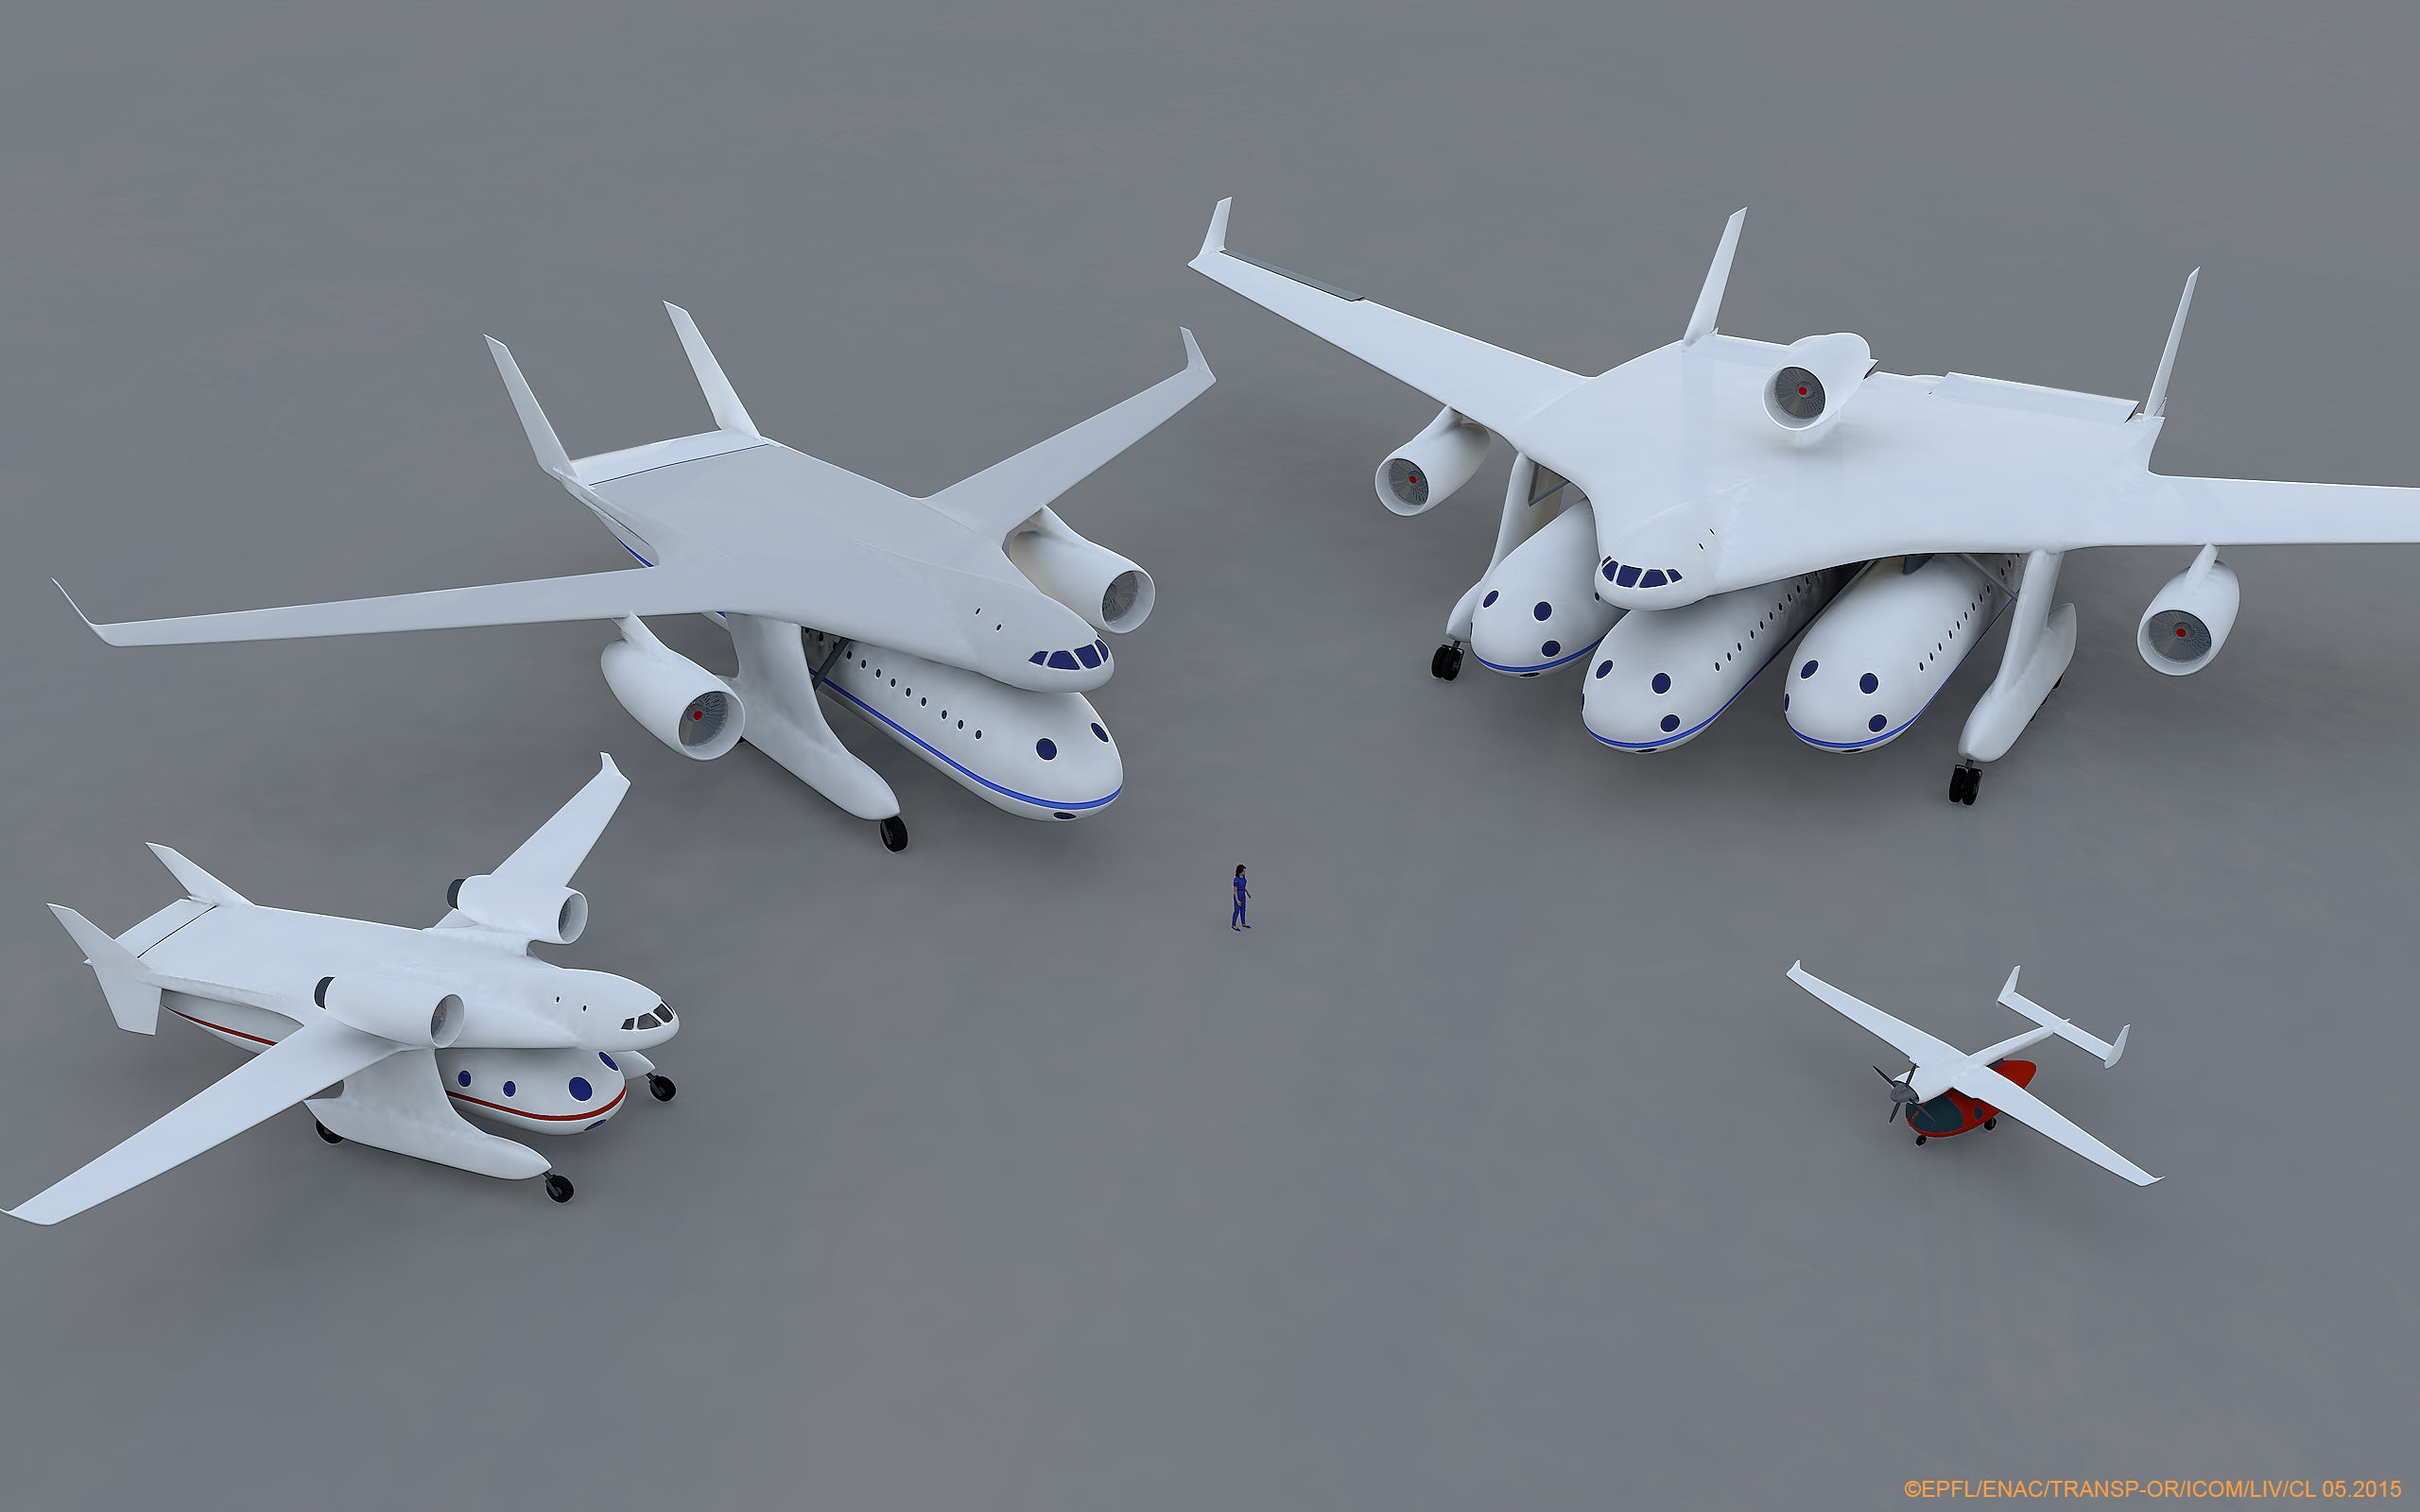 Modular Plane Concept Treats Passenger Cabin Like A Shipping Container